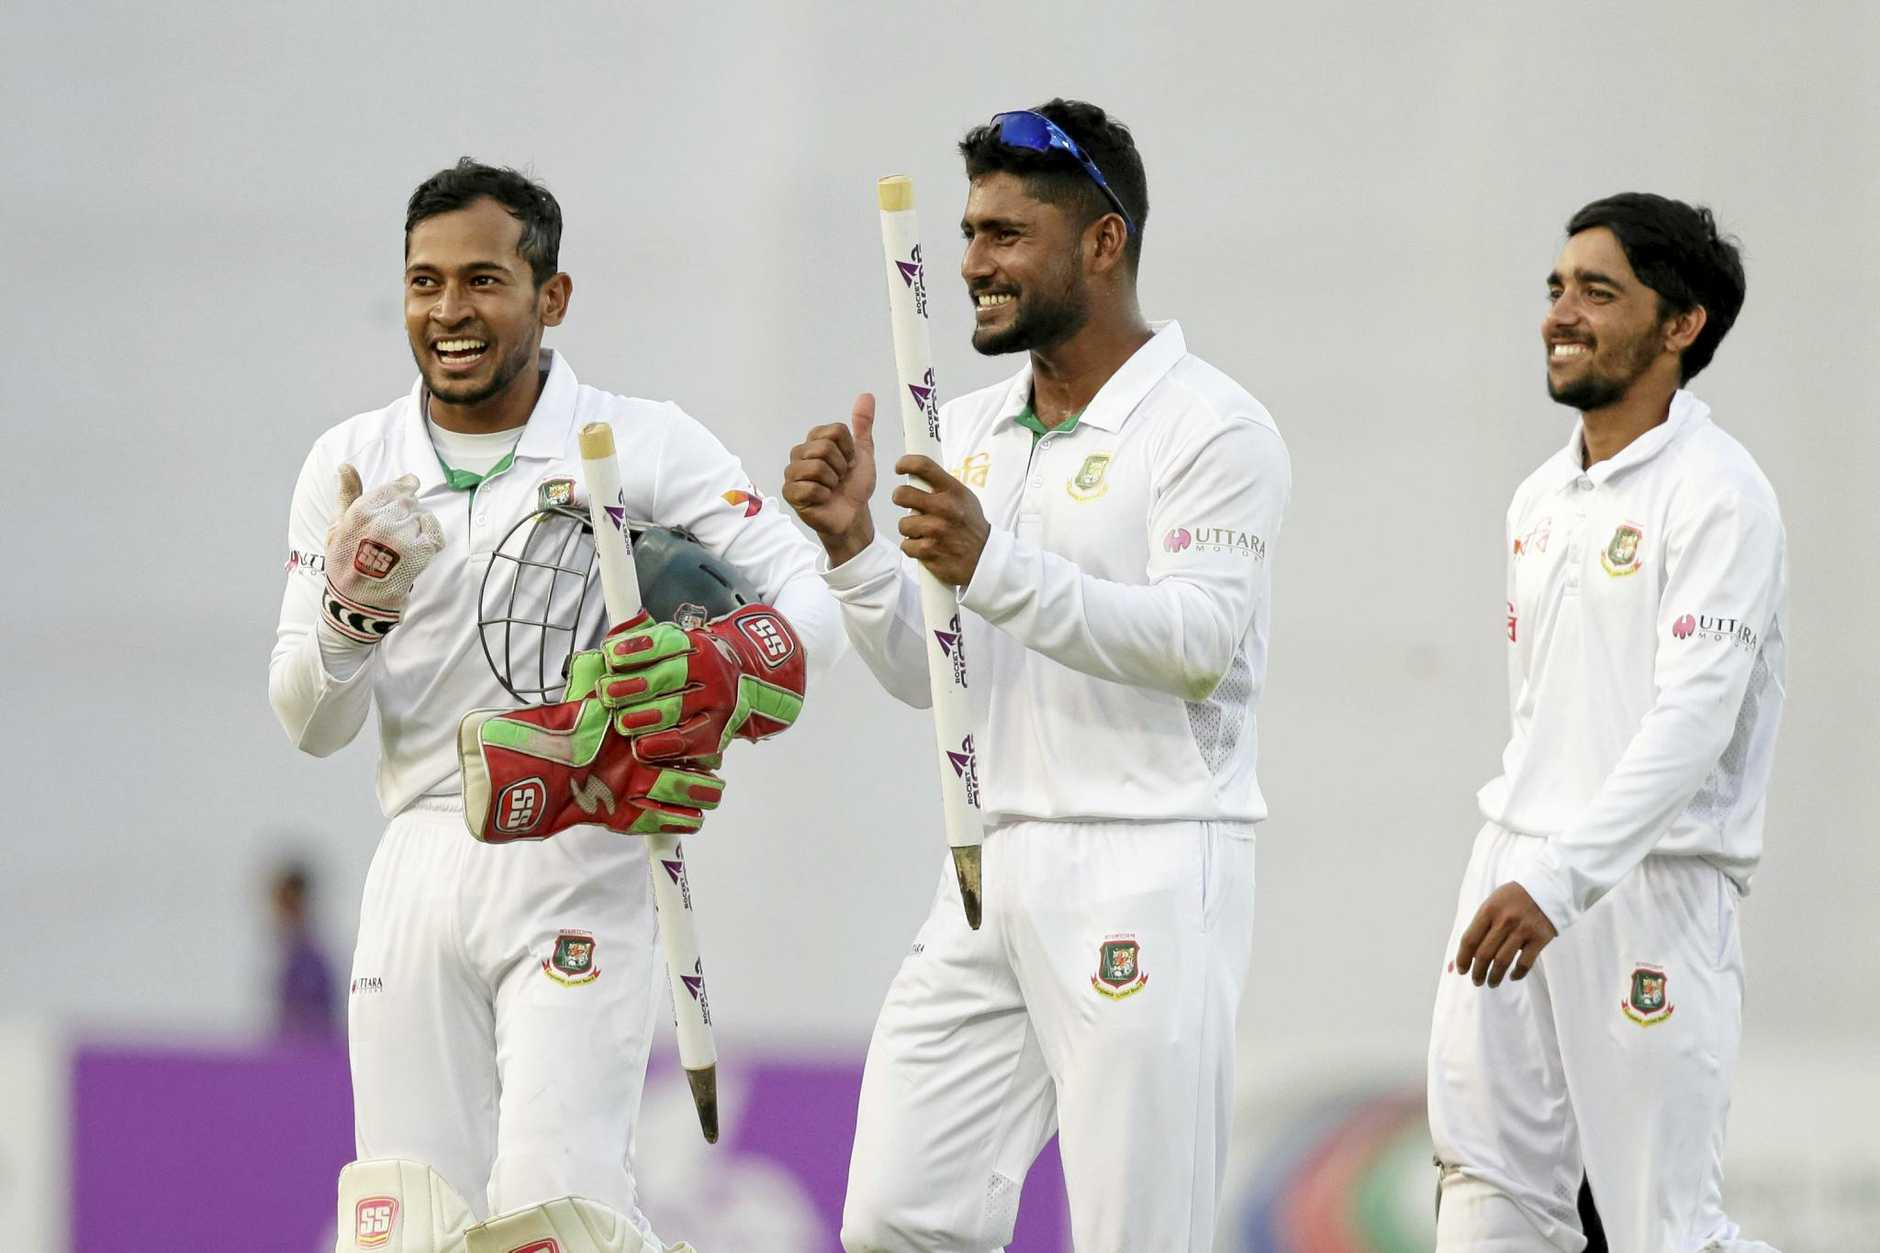 Bangladesh's captain Mushfiqur Rahim, left, celebrates with his teammates Imrul Kayes, centre, and Mominul Haque after their victory over England in October.